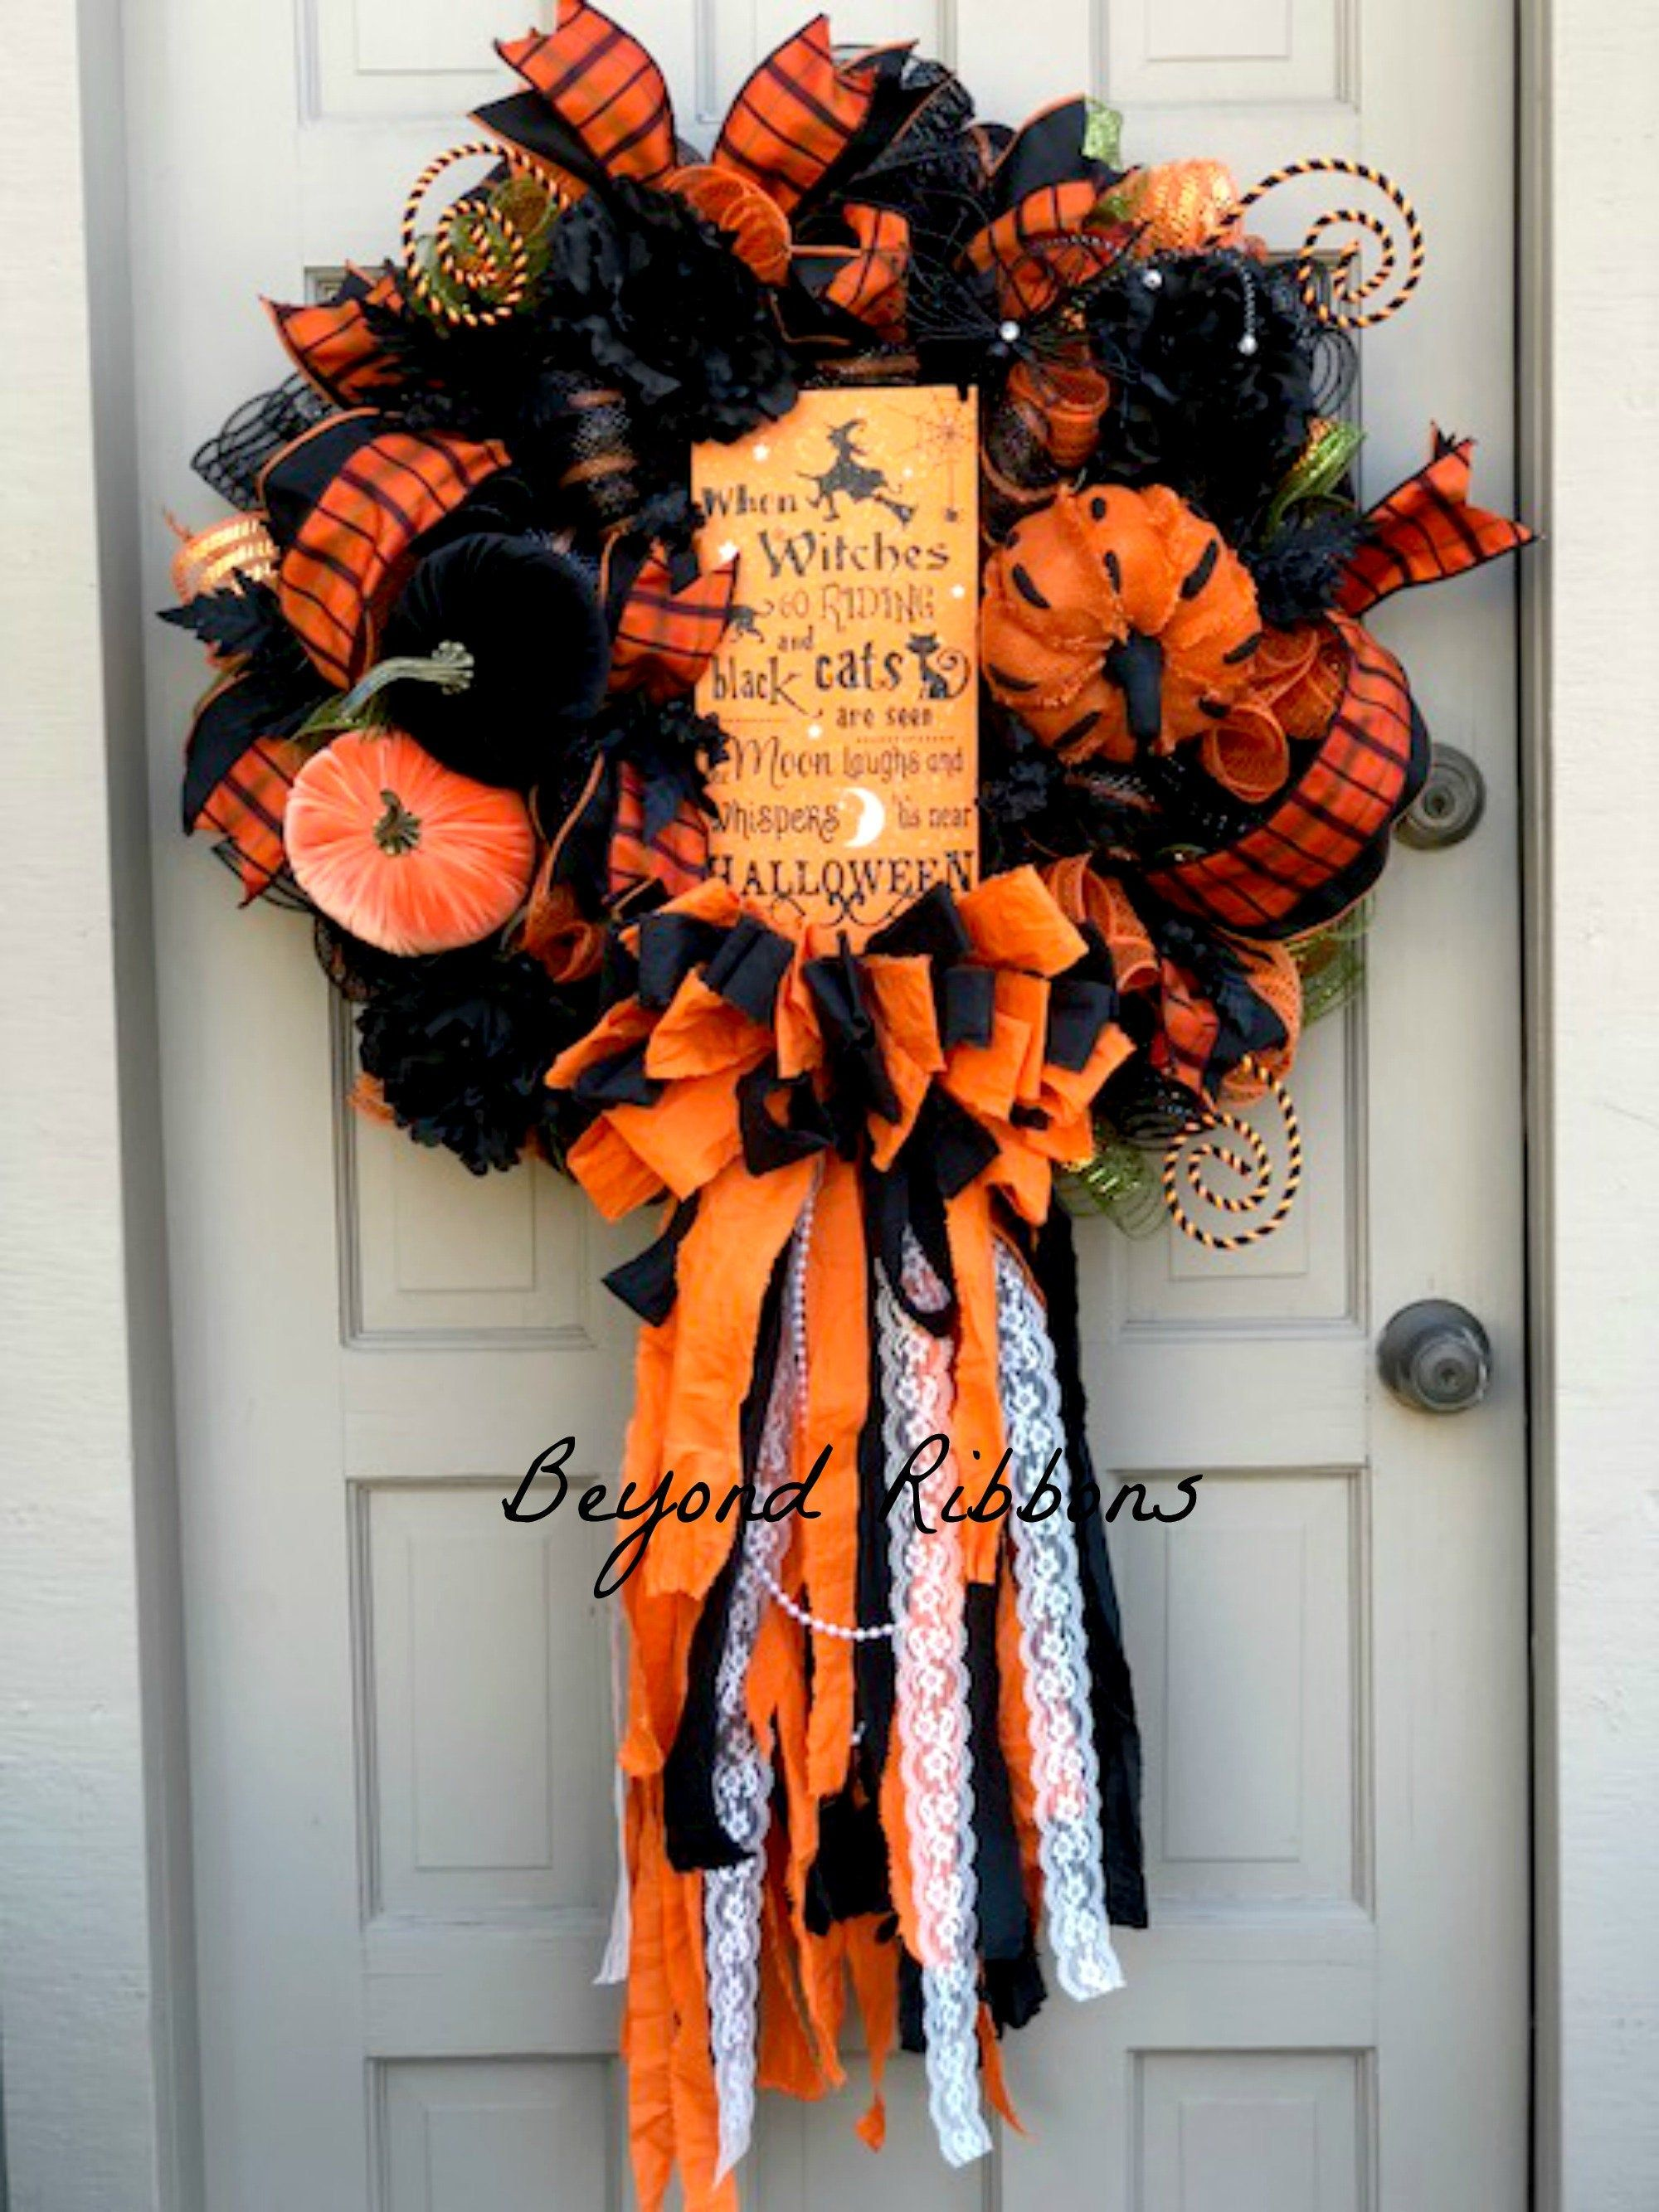 Halloween Pumpkin Rag Bow Wreath, Fall Wreath, Pumpkin Wreath, Front Door Wreath, Elegant Halloween Wreath, Halloween Decor, Mesh Wreath #eleganthalloweendecor